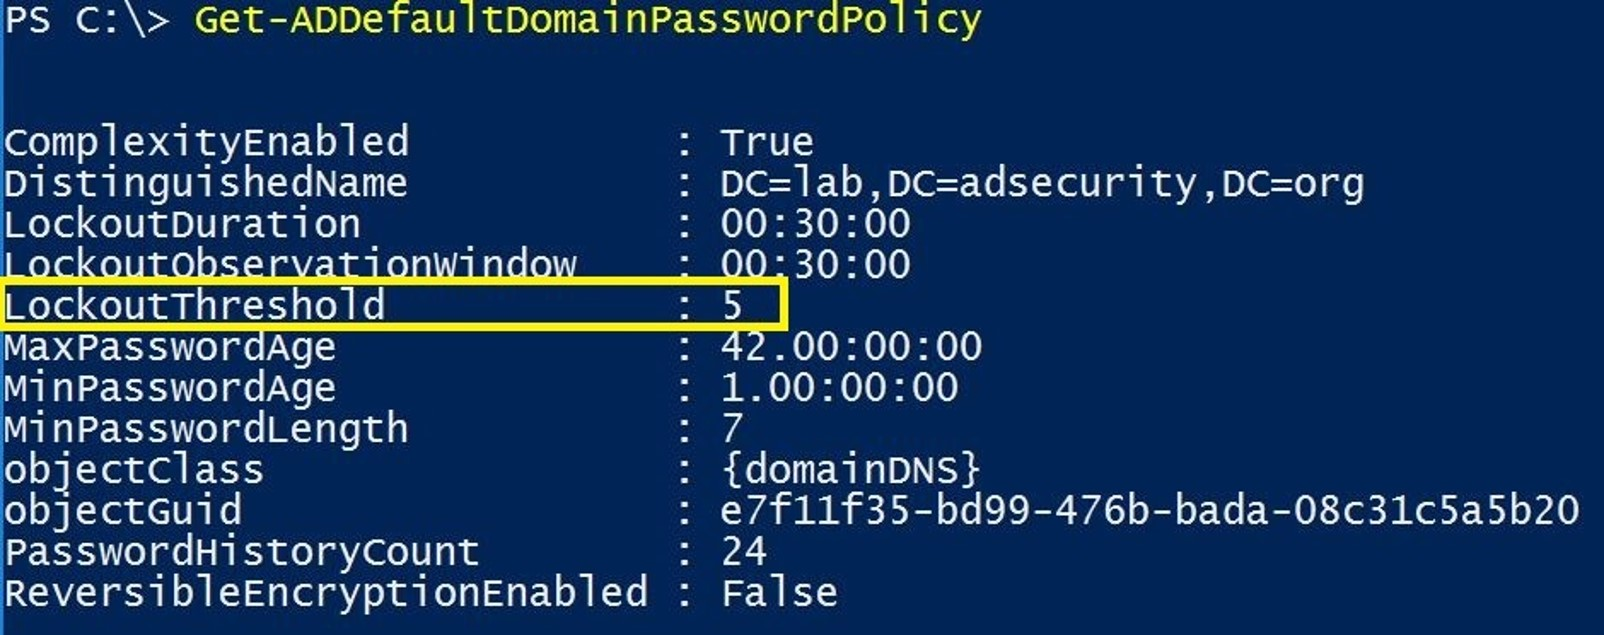 Trimarc Research: Detecting Password Spraying with Security Event